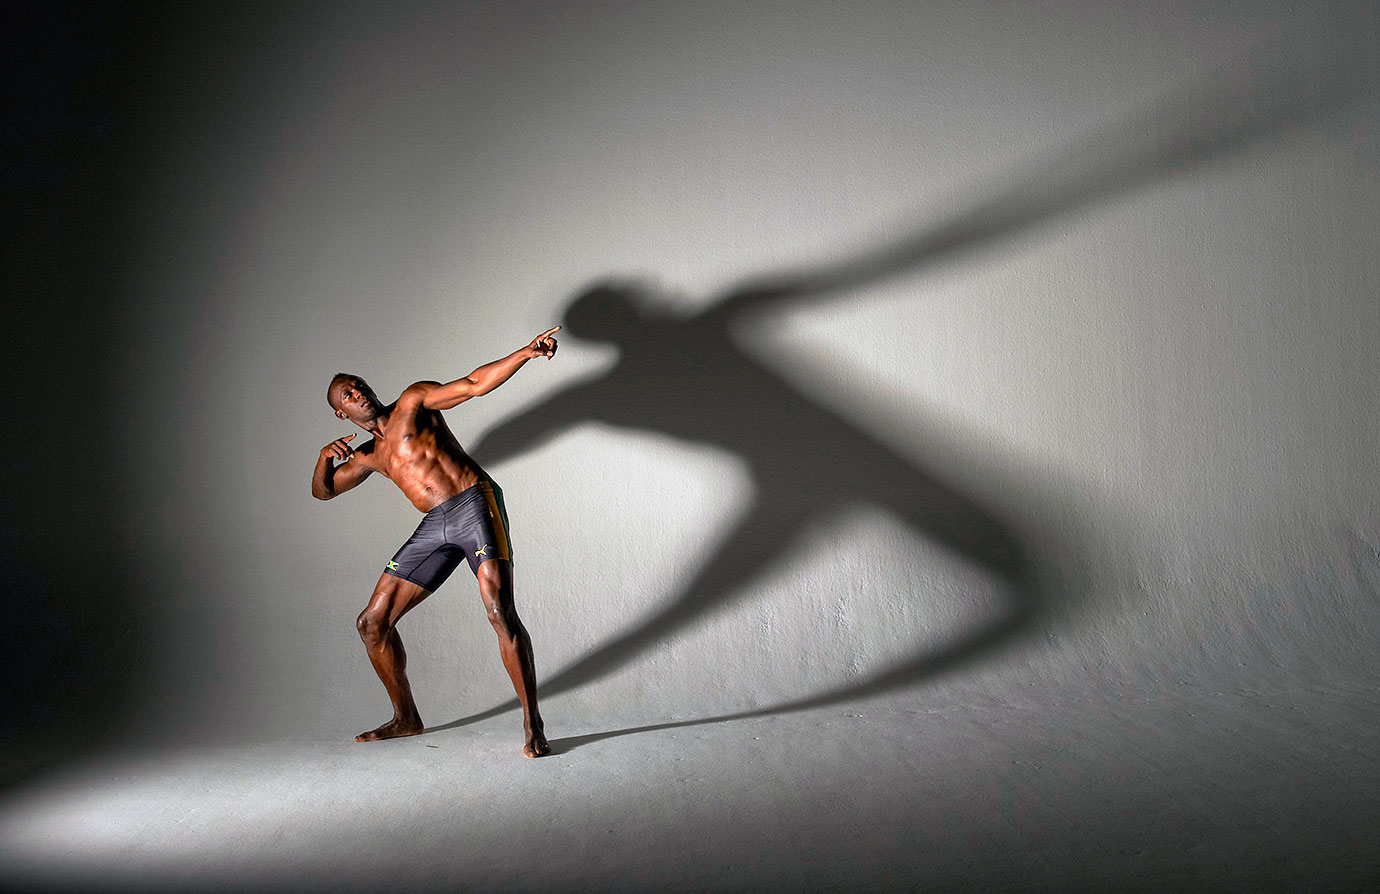 Bolt, captured here during an SI photo shoot, owns three world records, six Olympic gold medals and 11 World Championship gold medals.